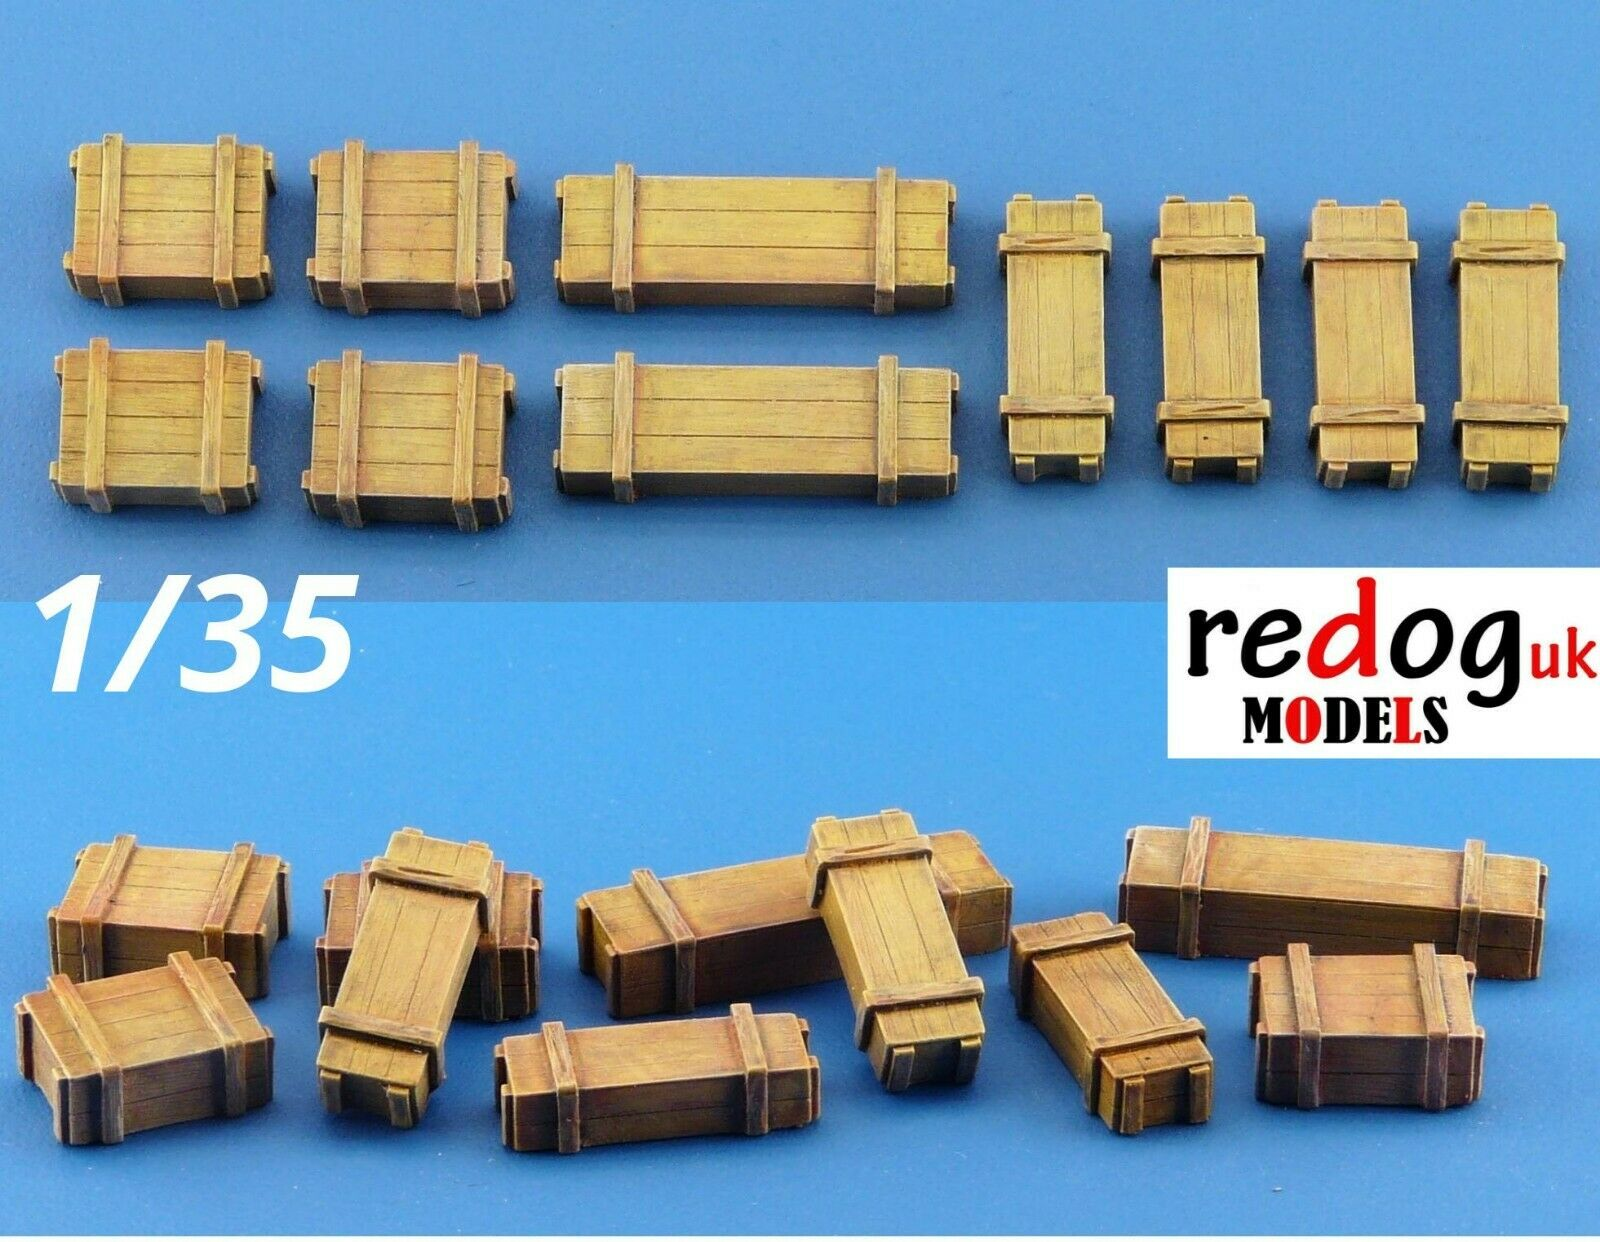 1/35 Boxes Military Scale Resin Modelling Stowage Kit Diorama Accessories 4 - redoguk